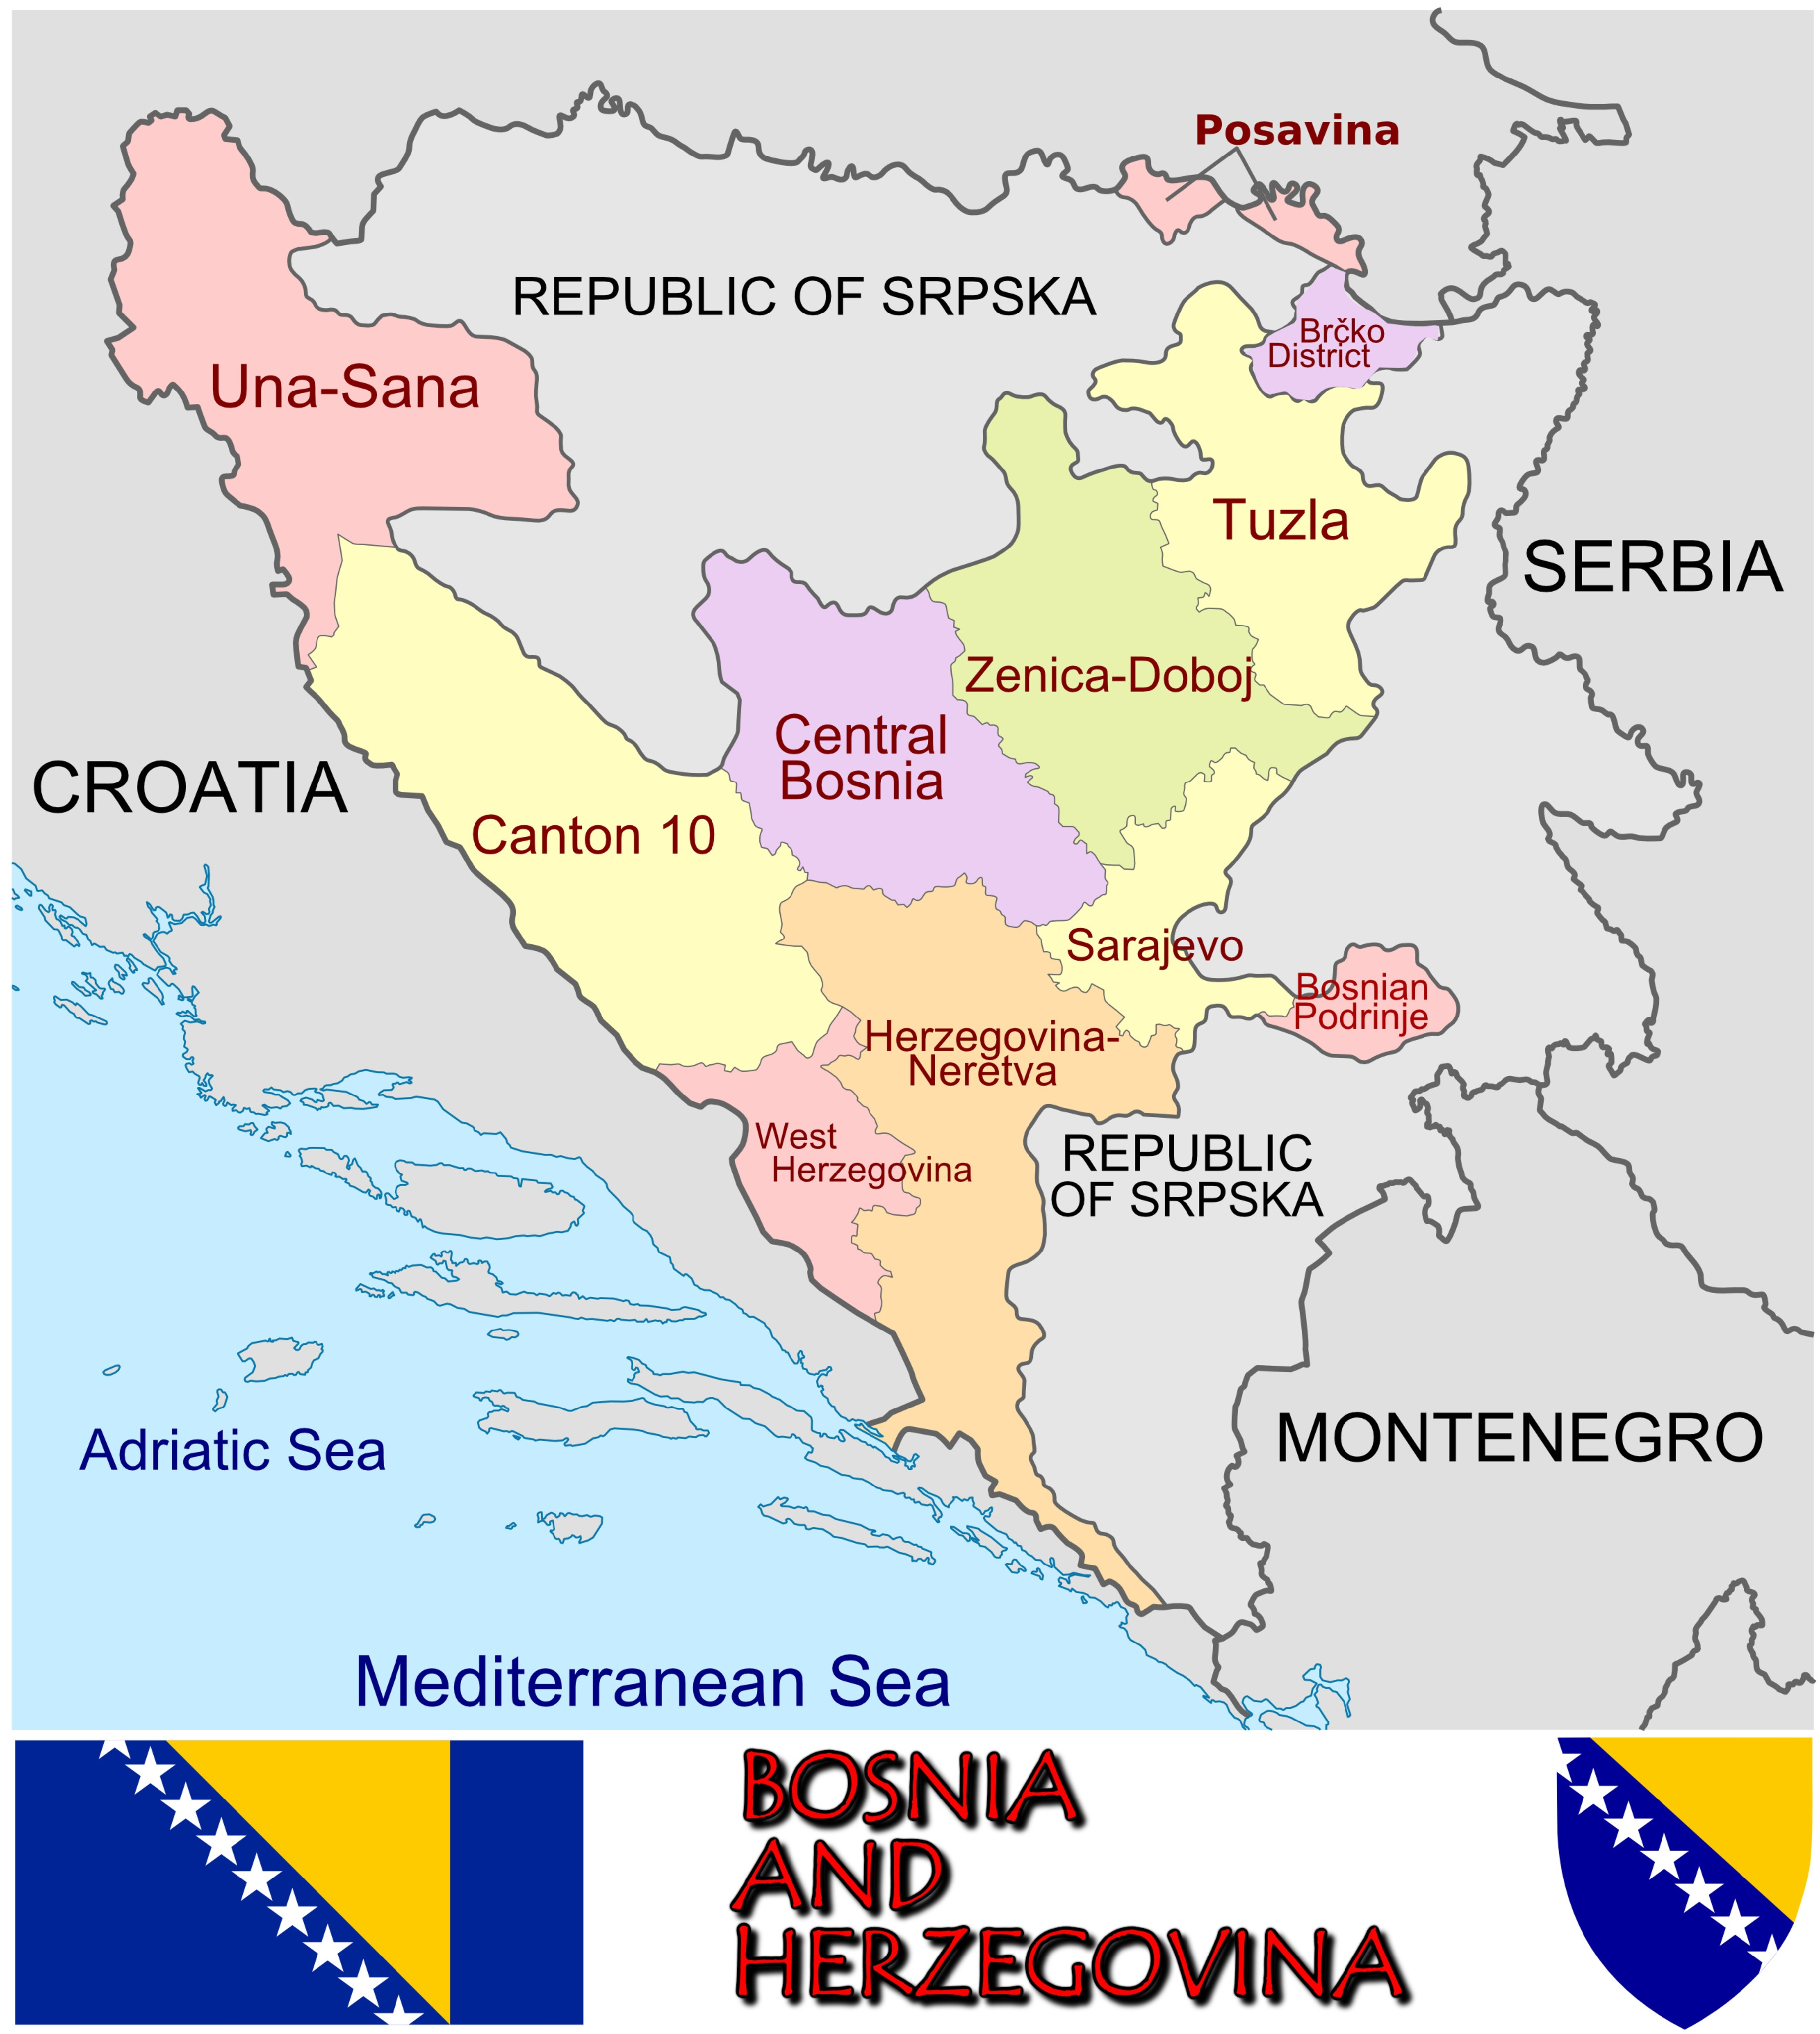 was the bosnian war an ethnic conflict politics essay Bosnian conflict: the bosnian conflict was an ethnically rooted war in bosnia and   with a multiethnic population comprising bosniaks (bosnian muslims), serbs,   a tripartite coalition government was formed, with the bosniak politician alija.